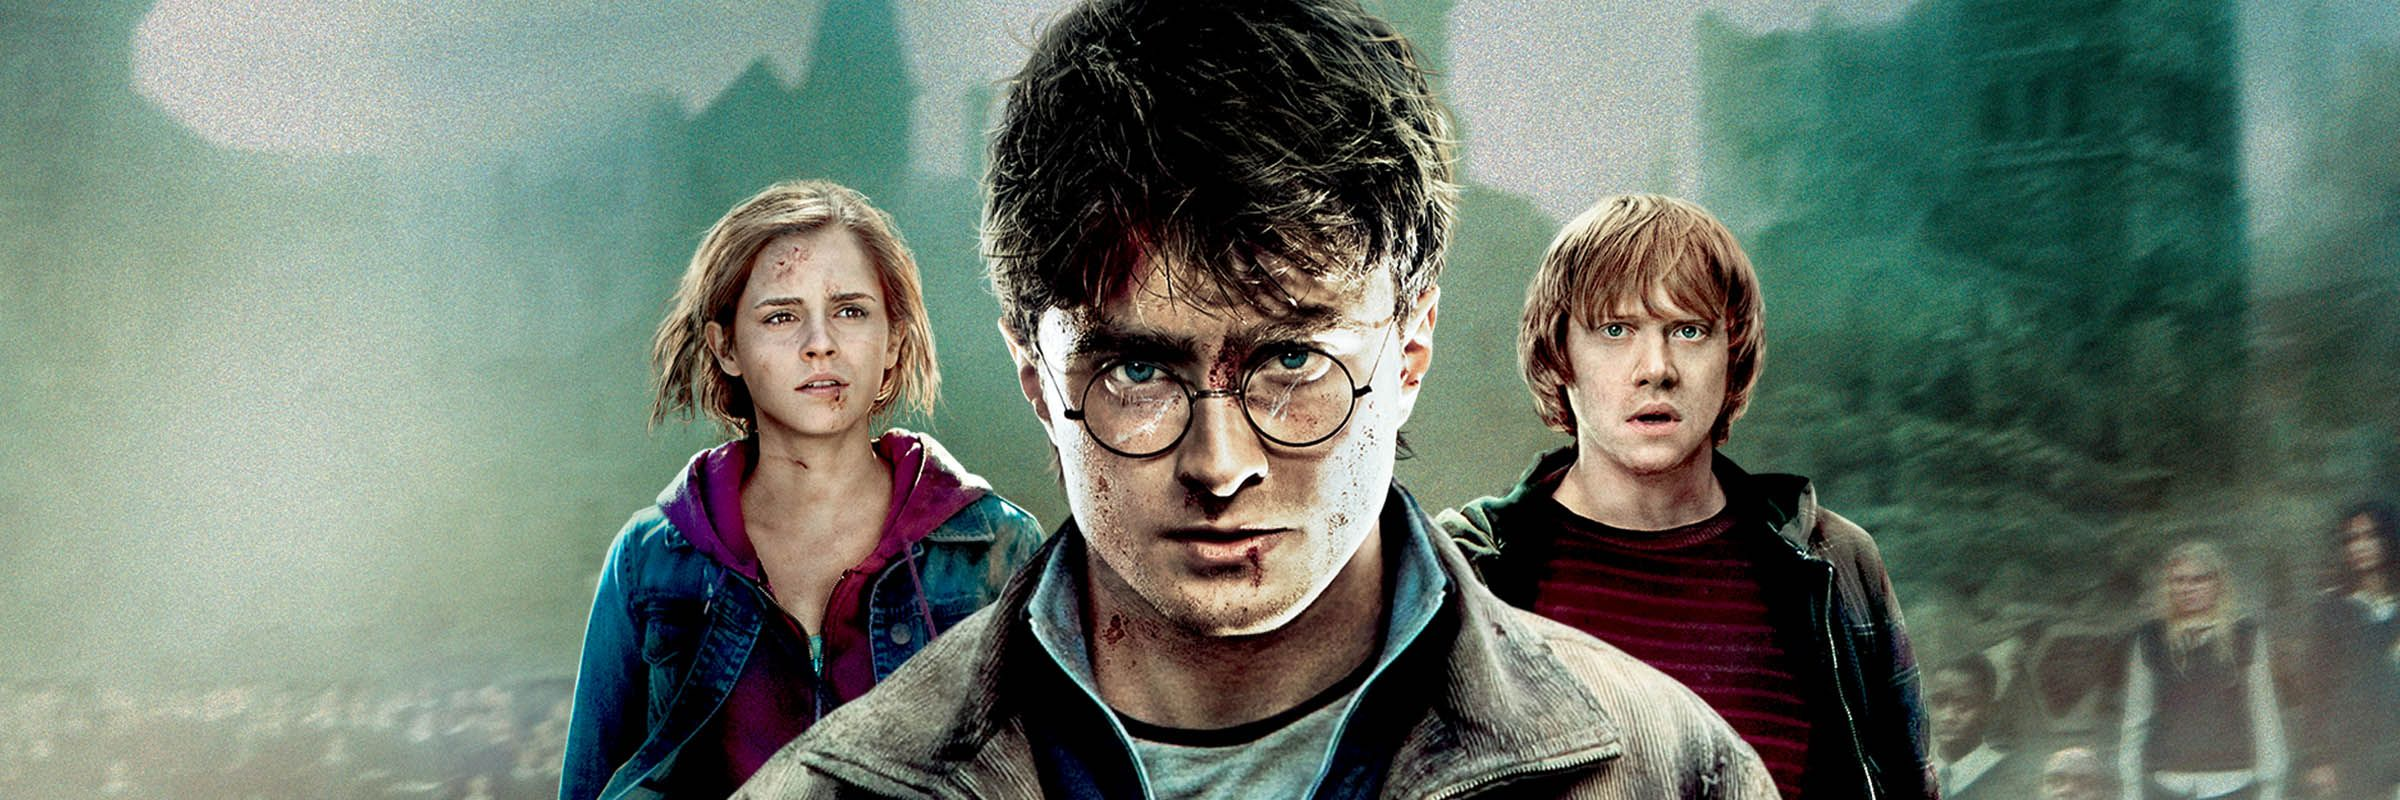 Harry Potter and the Deathly Hallows, Part 2   Full Movie